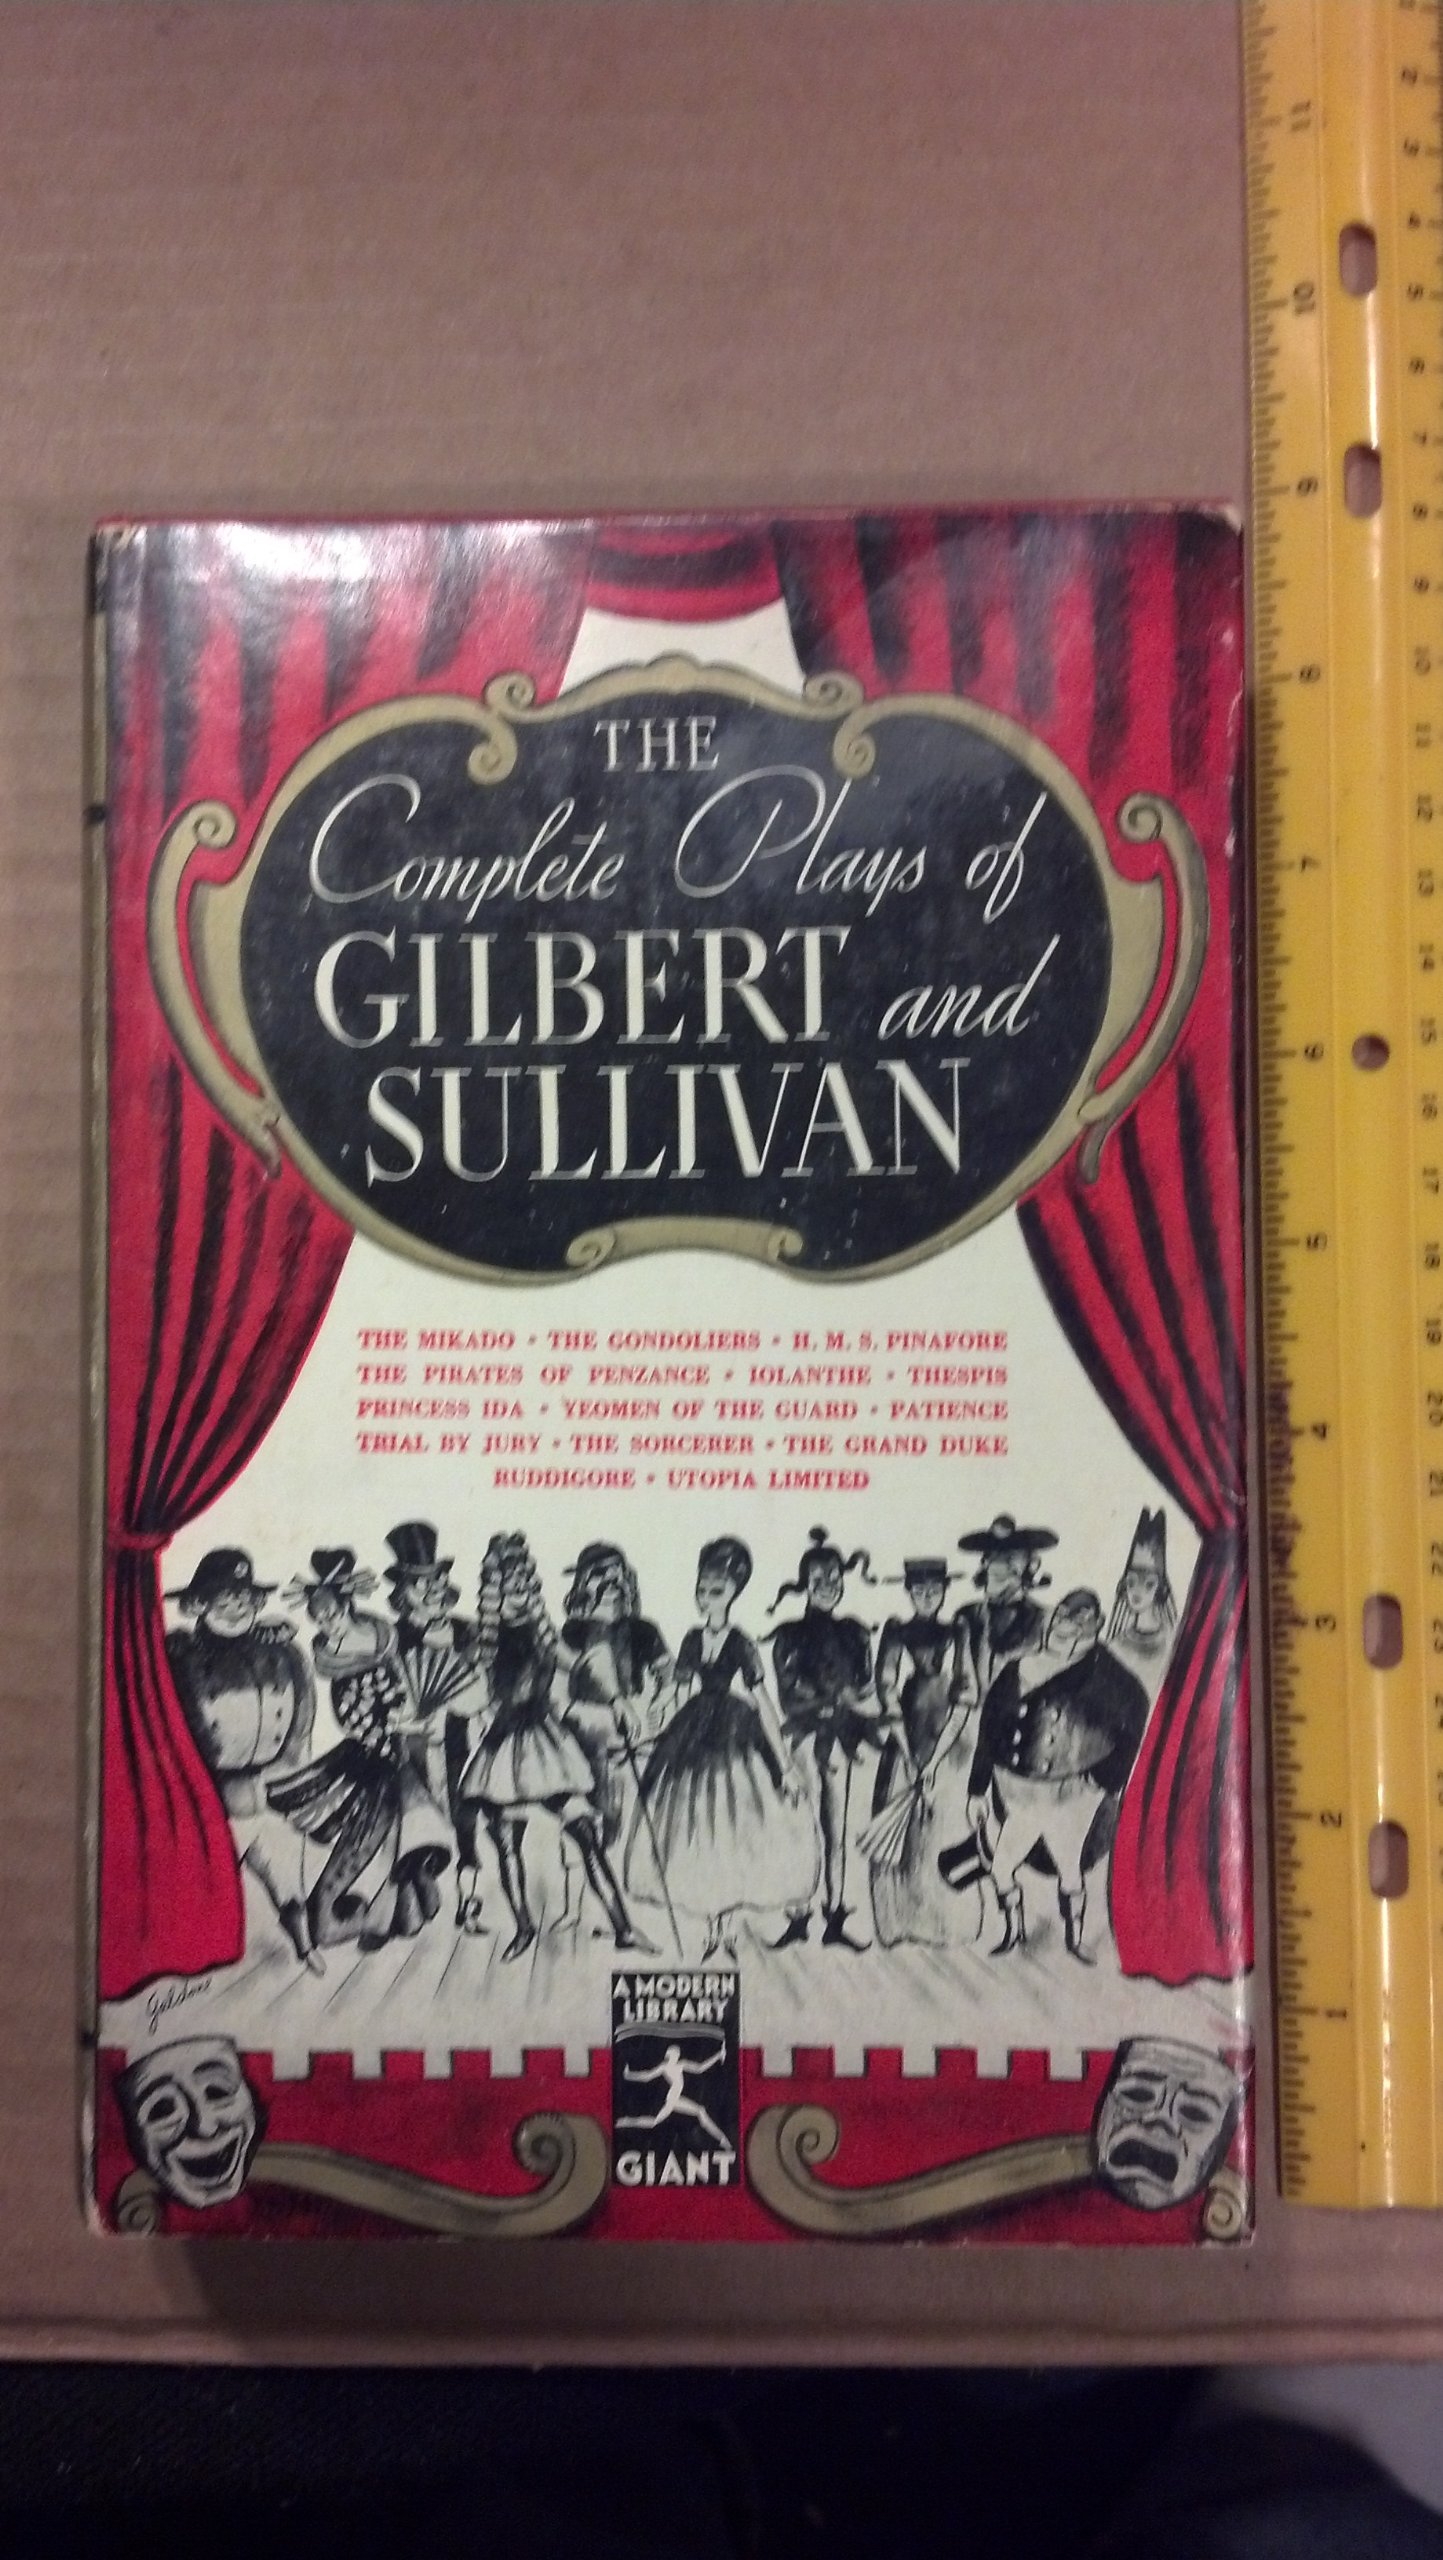 The Complete Plays of Gilbert and Sullivan